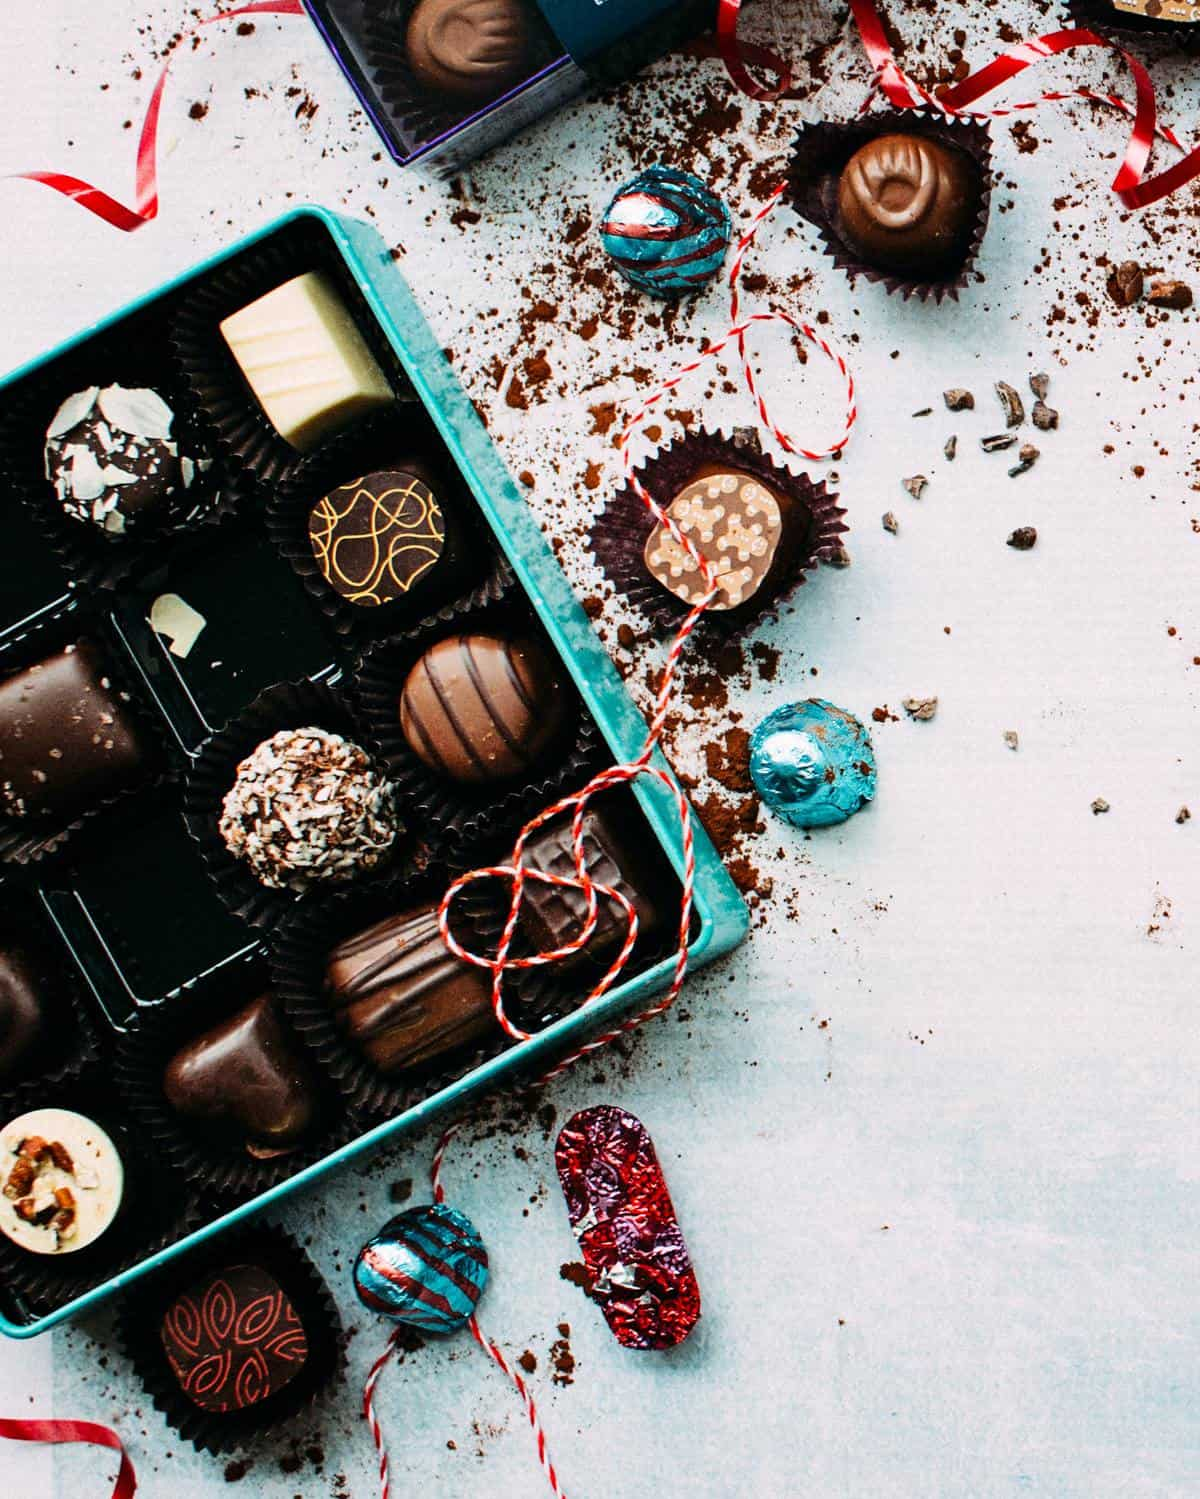 A large box of chocolates representing food cravings during period.